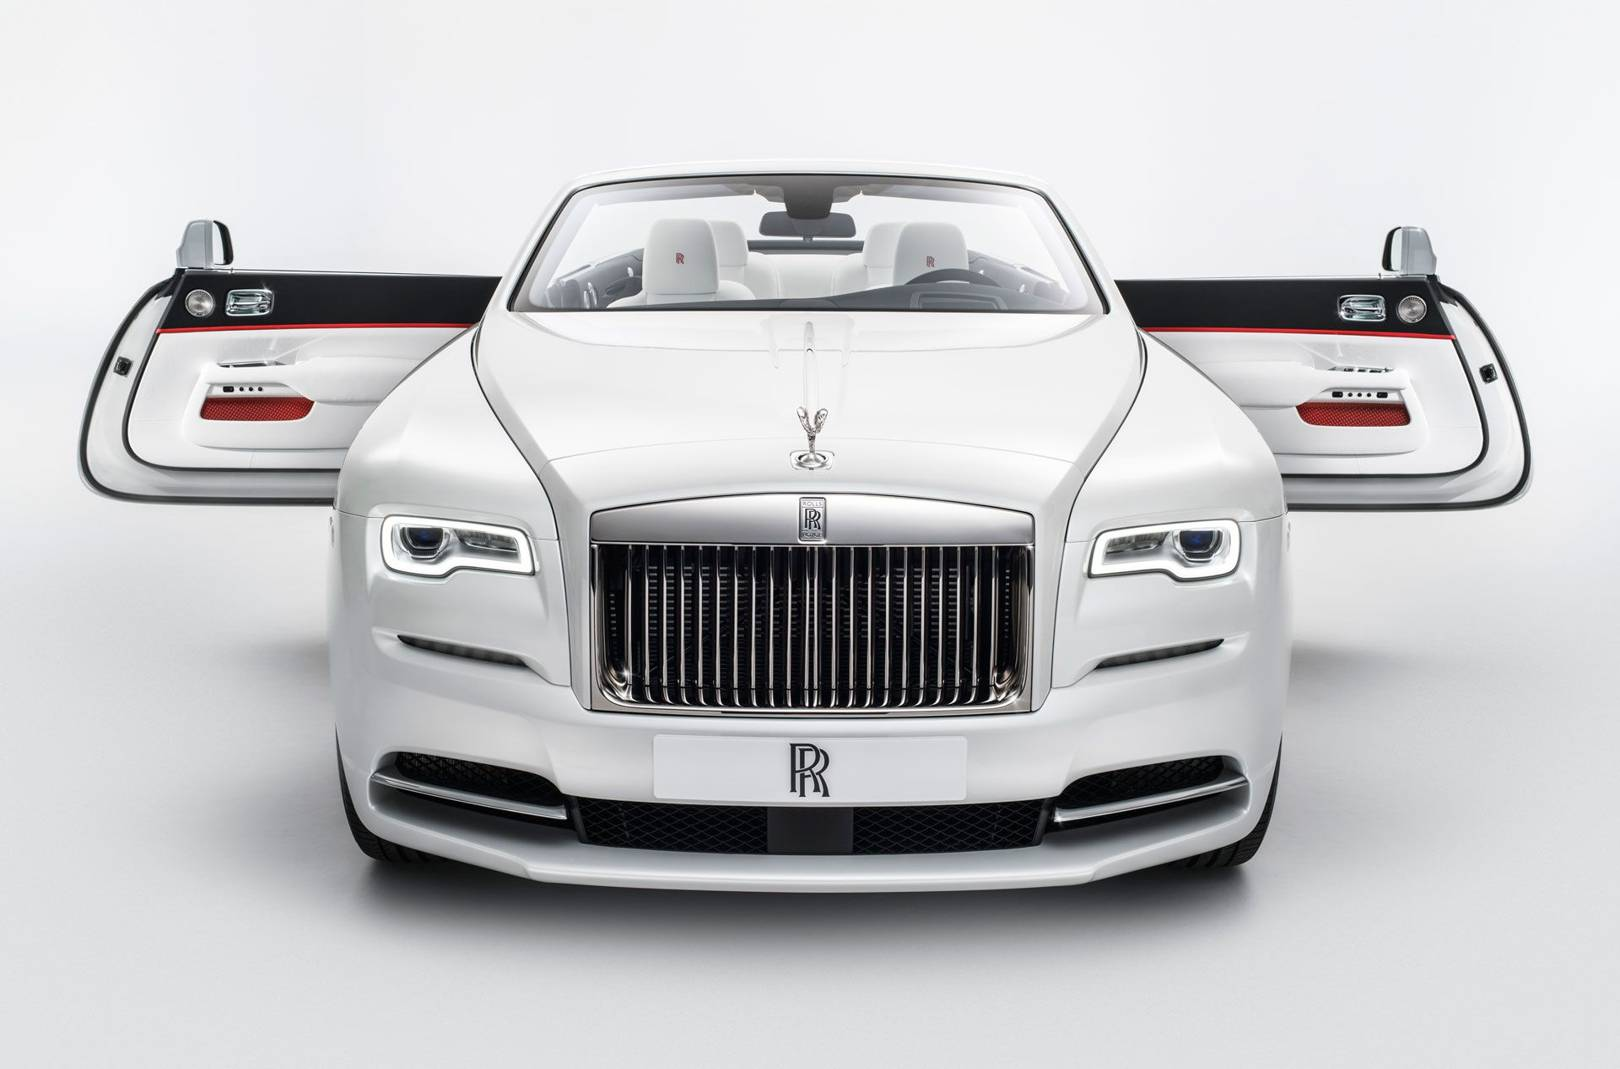 dc design rolls royce in london designer dc British GQ